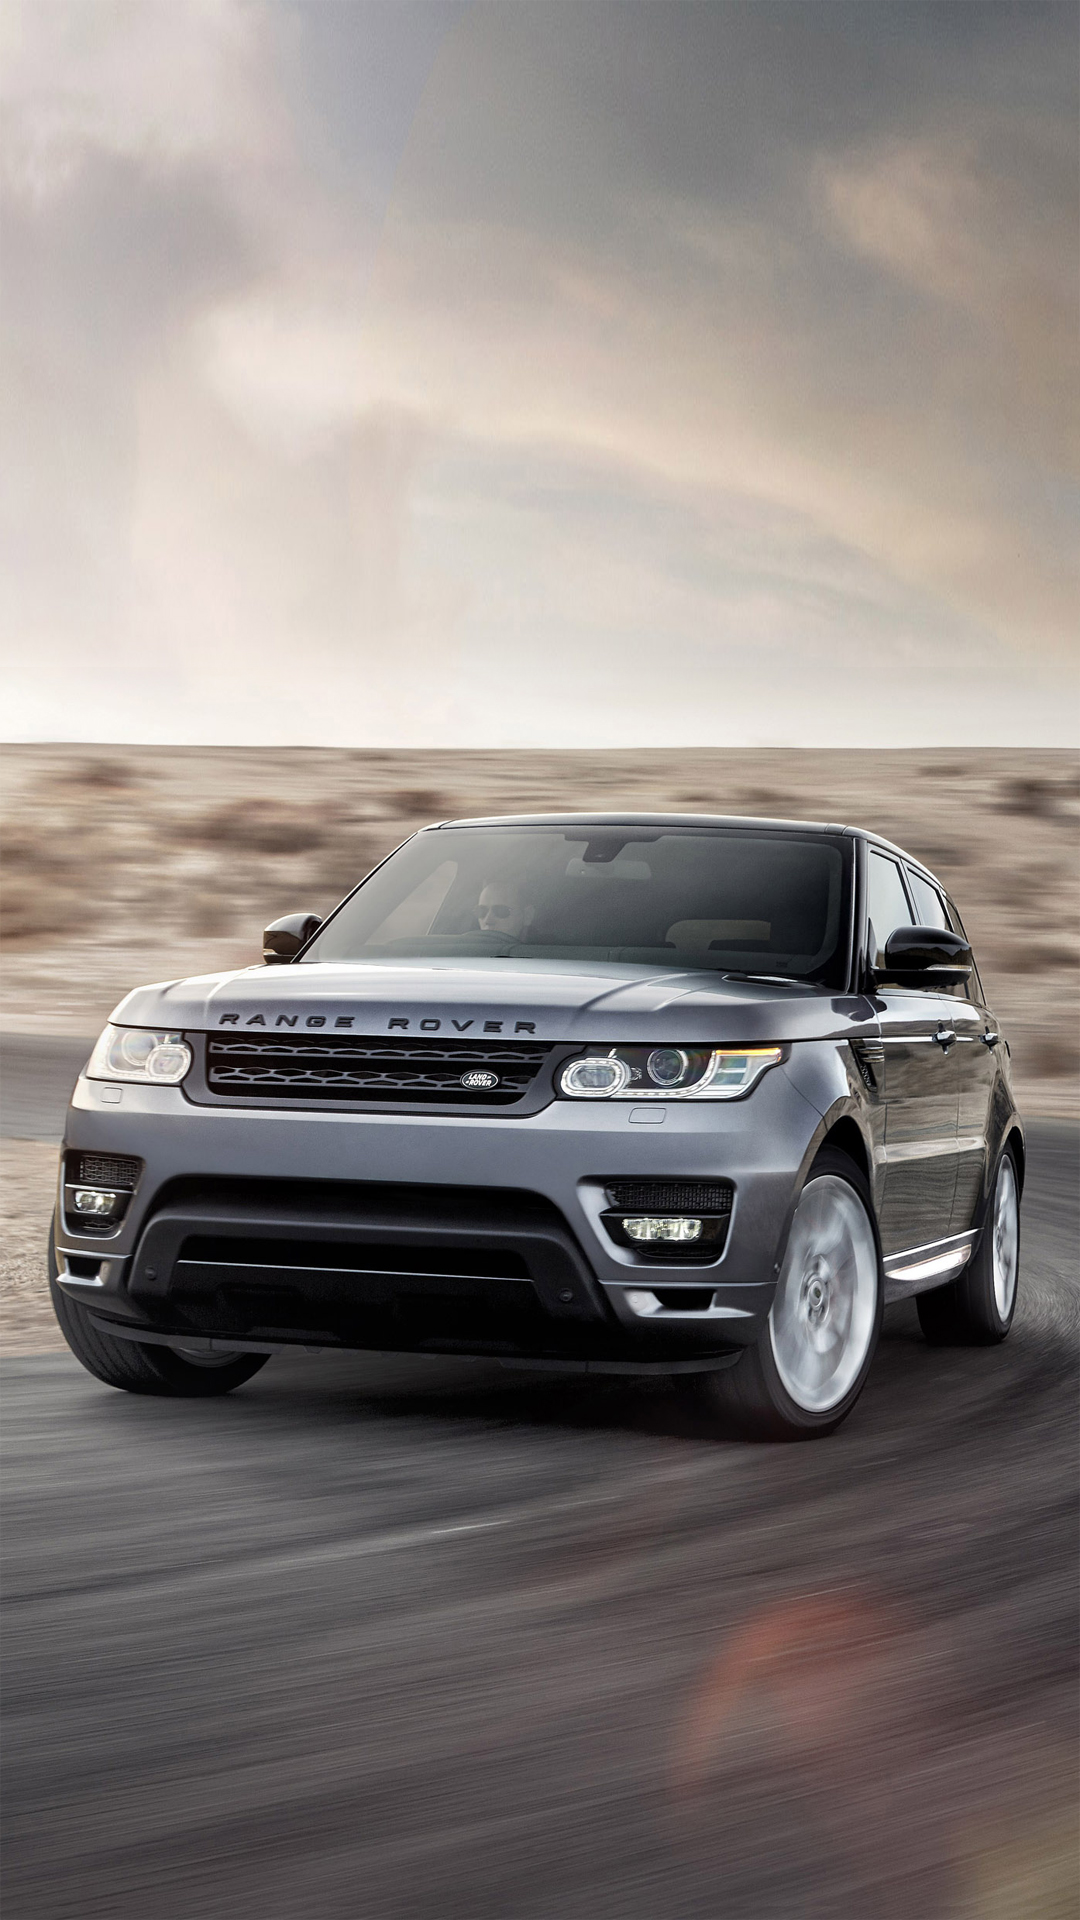 Range Rover Car Hd Wallpaper Download 2014 Range Rover Sport Best Htc One Wallpapers Free And